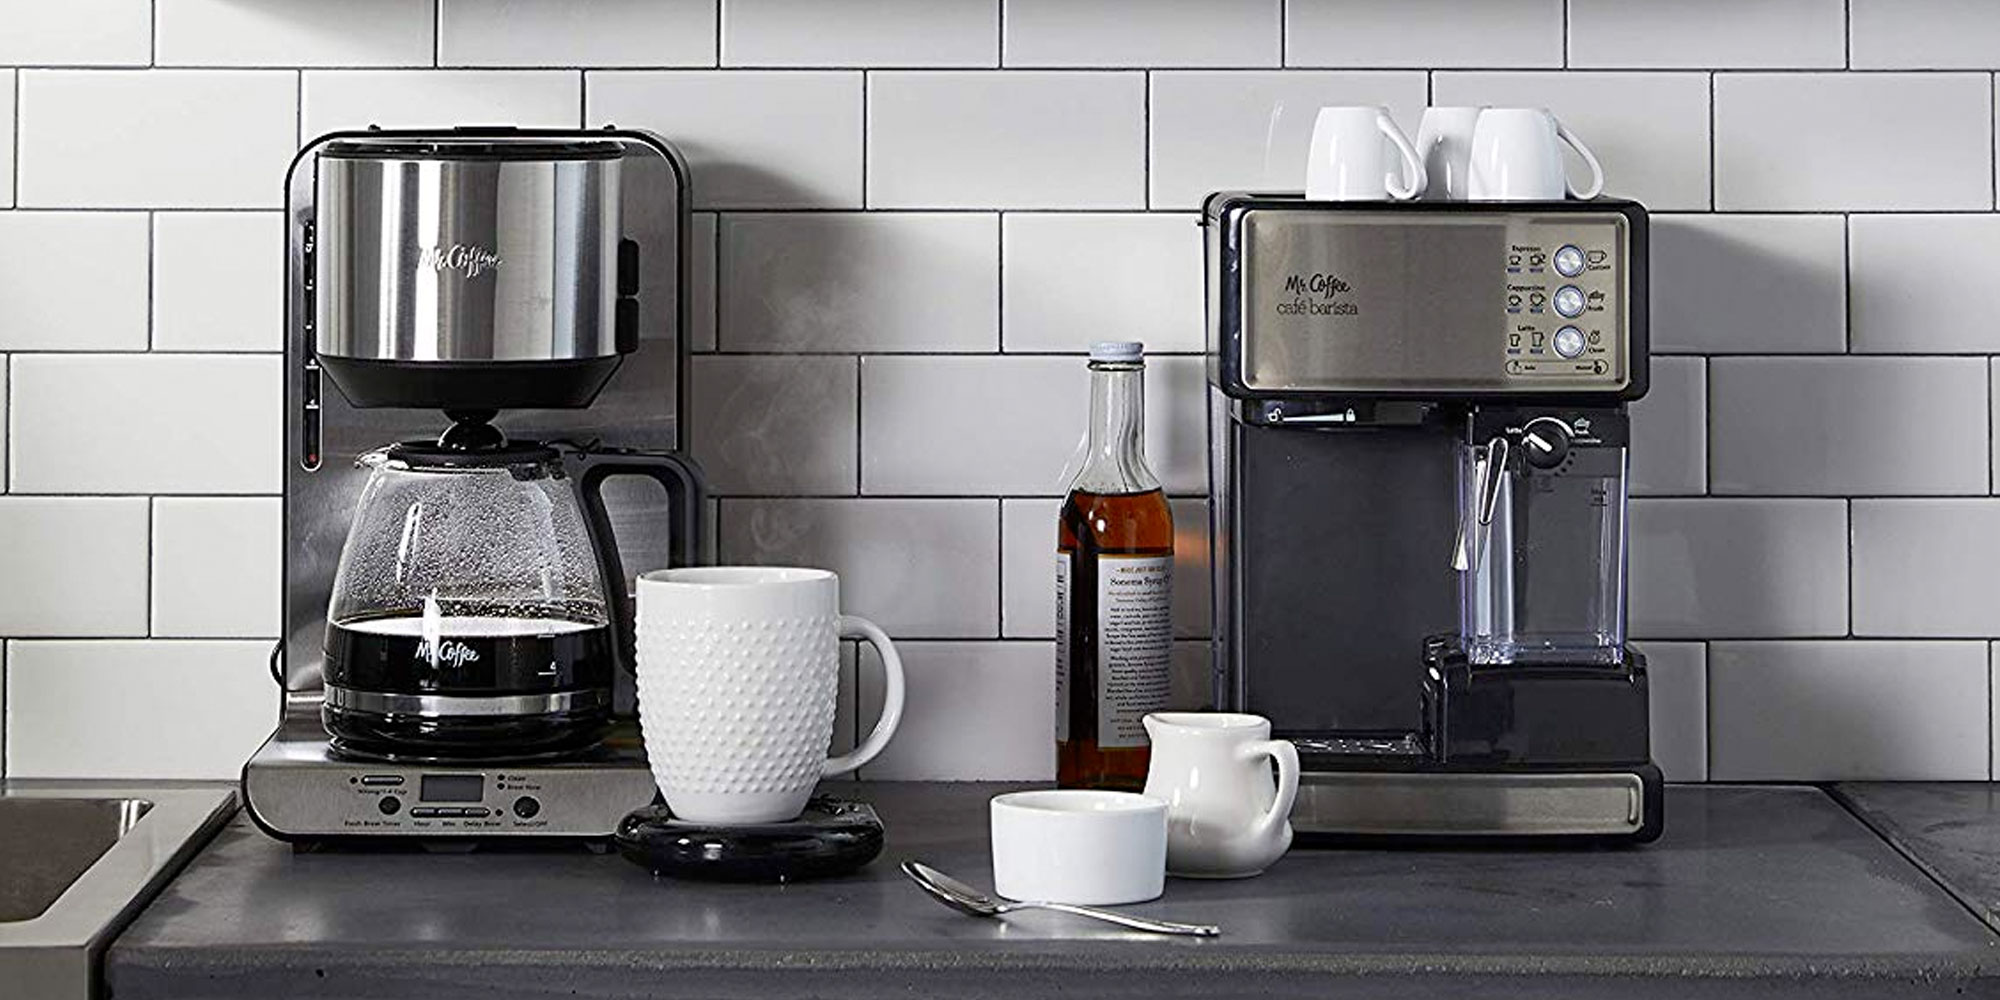 Enjoy espresso or cappuccinos at home w/ this Mr. Coffee brewer for $100 (50% off)